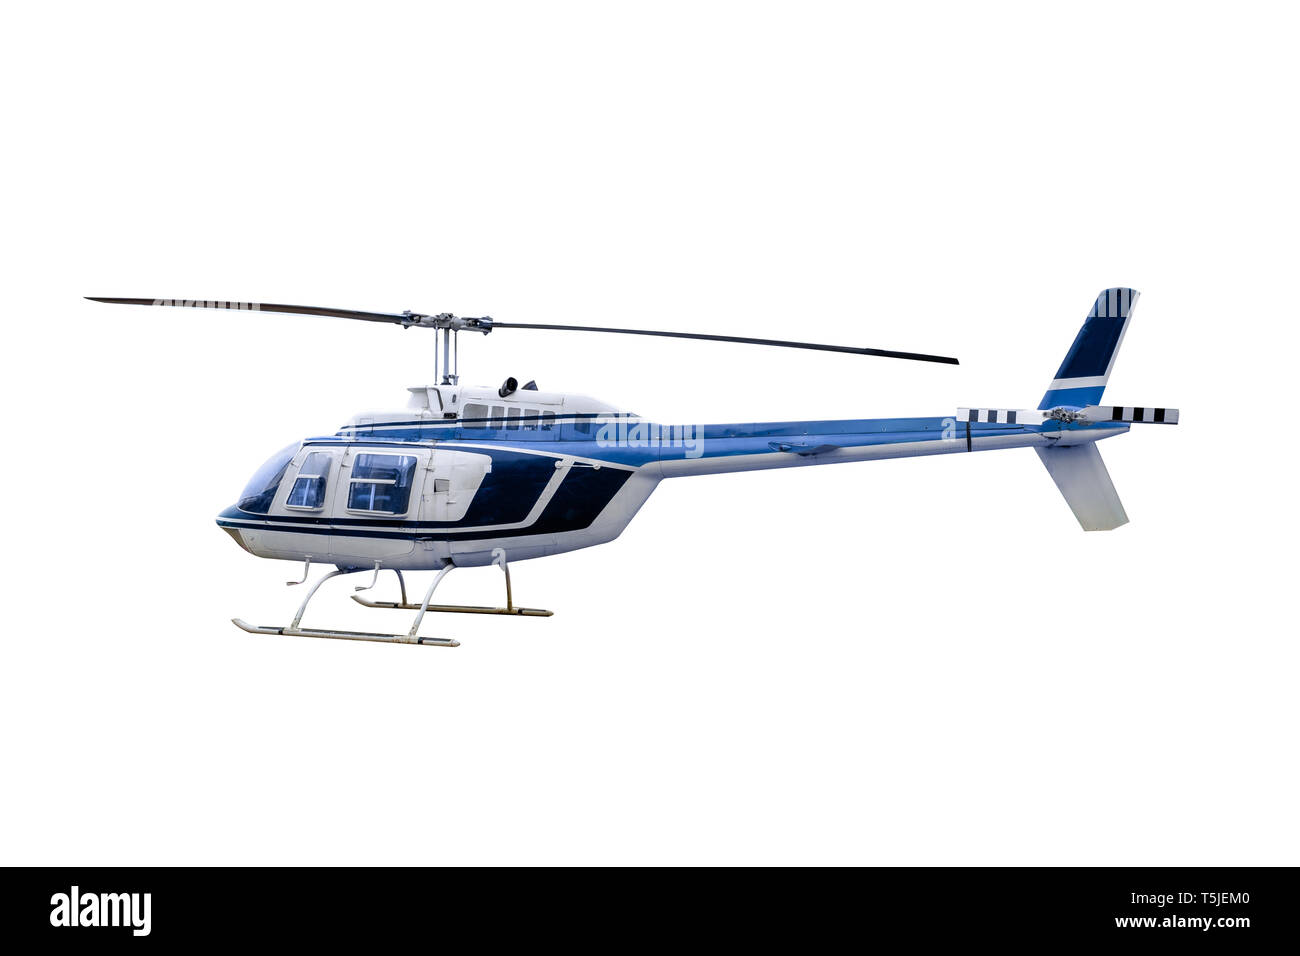 Blue old model Helicopter parked, Isolated on white background - Stock Image